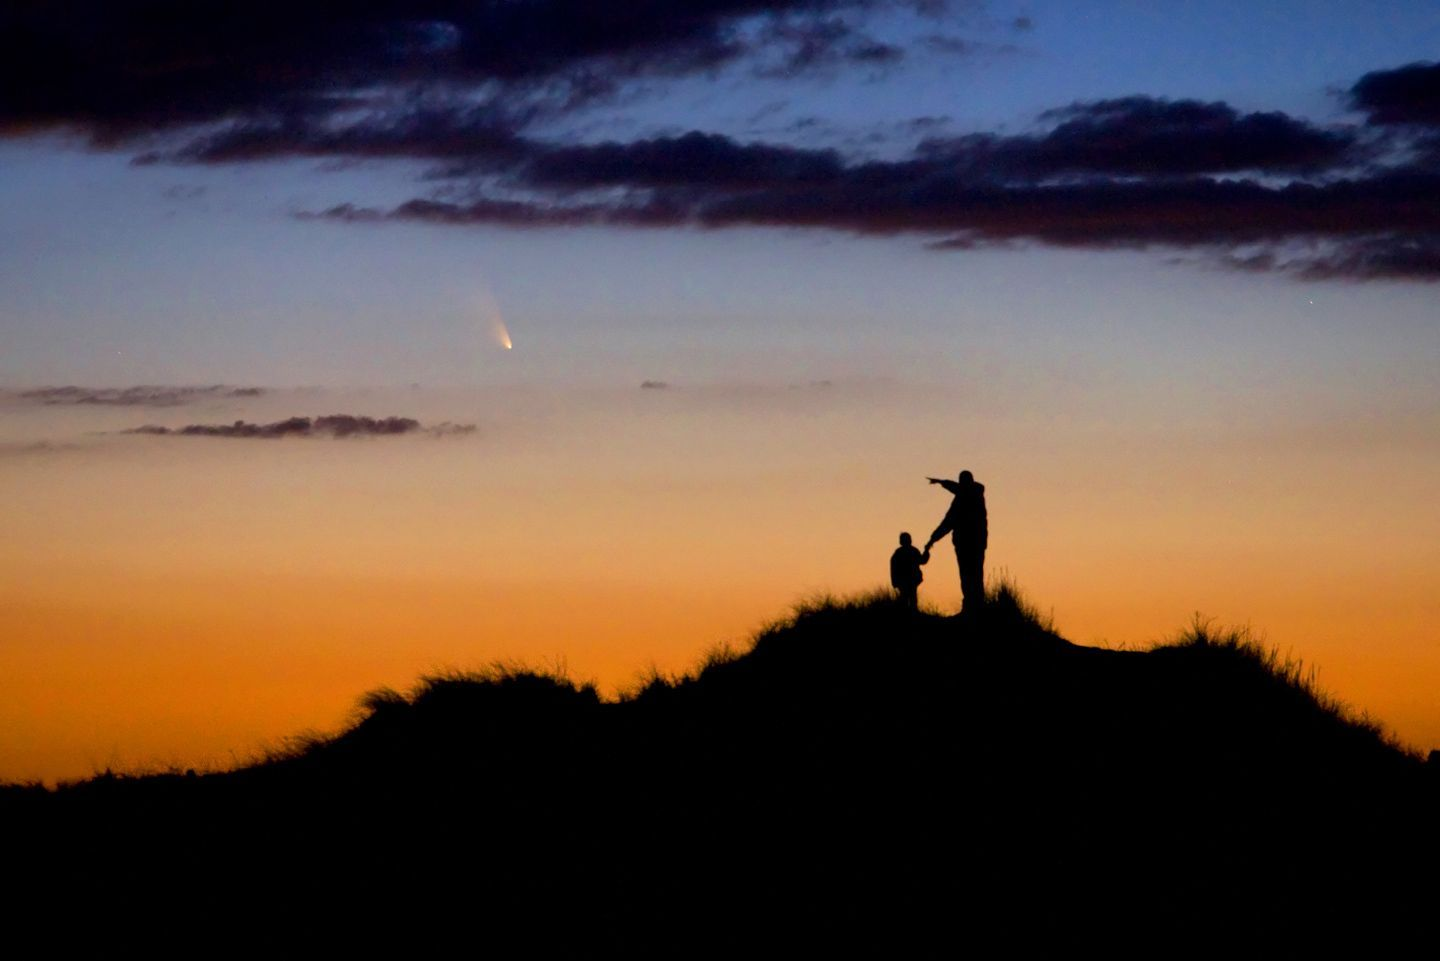 Father and son observe comet PanSTARRS. A father and his young son watch the evening display of comet PanSTARRS on First Encounter beach, Eastham, Massachusetts, USA. The photographer had spent weeks preparing